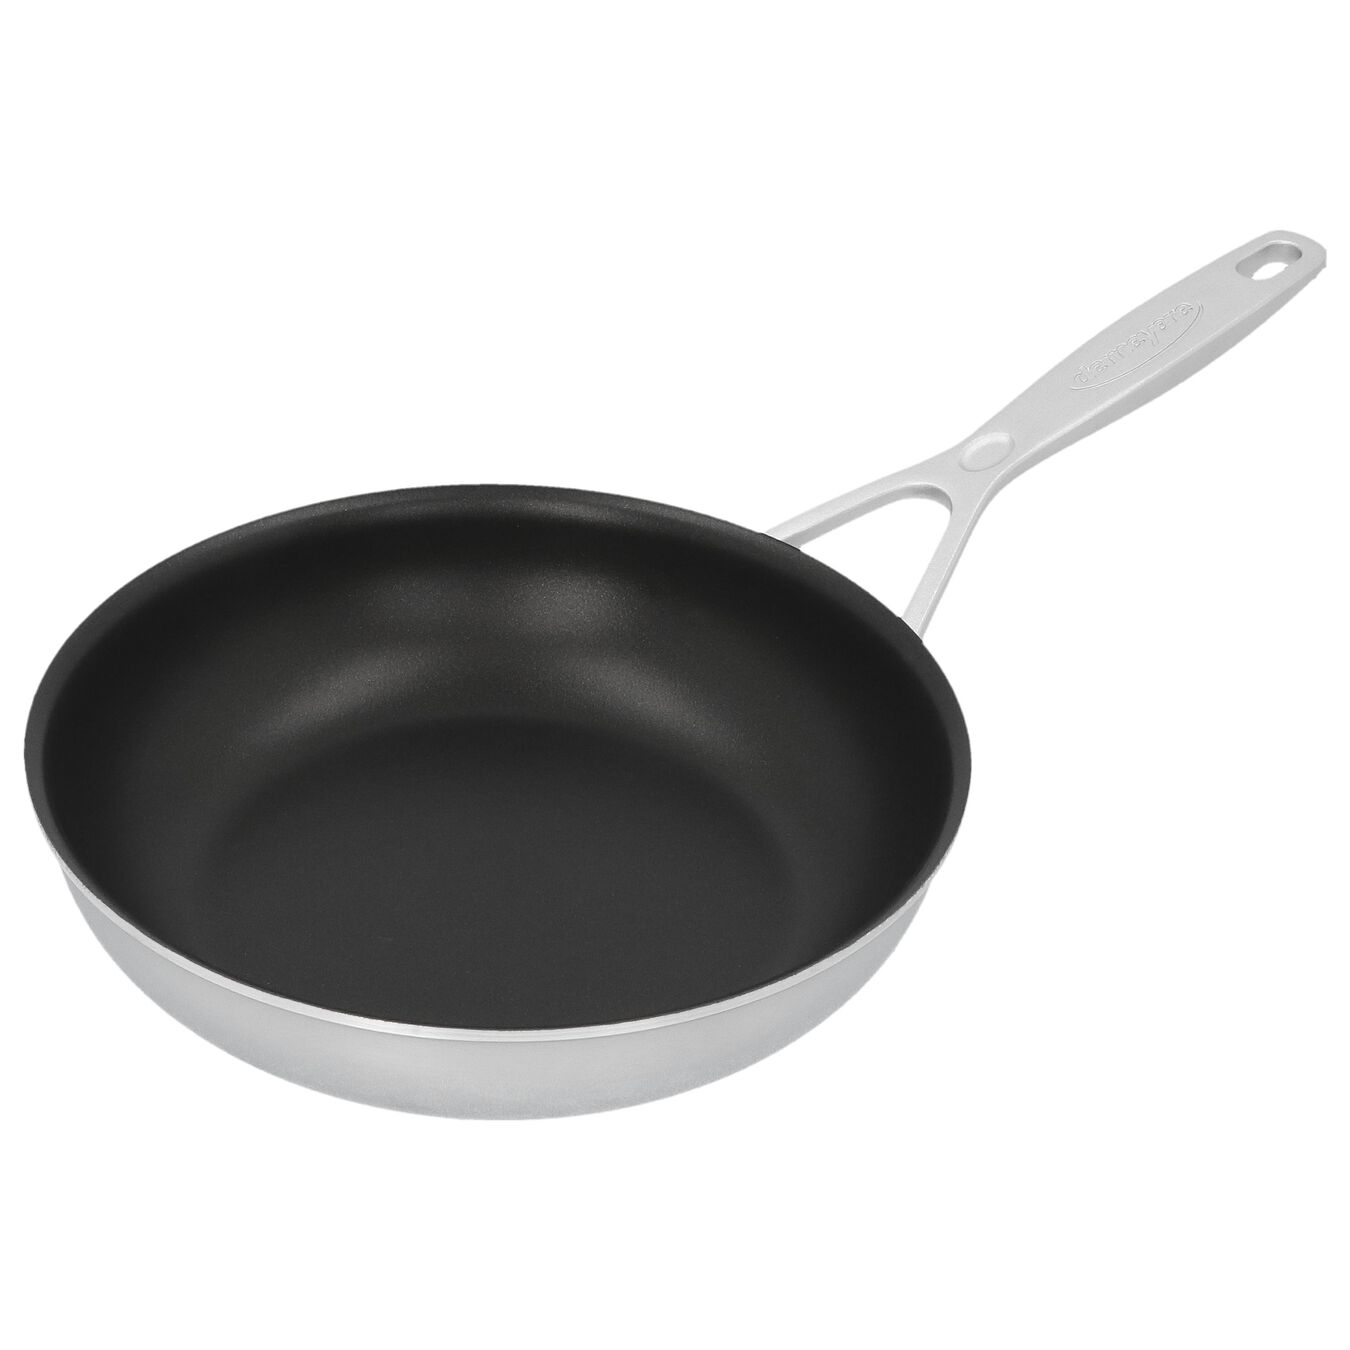 8-inch, 18/10 Stainless Steel, Non-stick, PTFE, Frying pan,,large 4